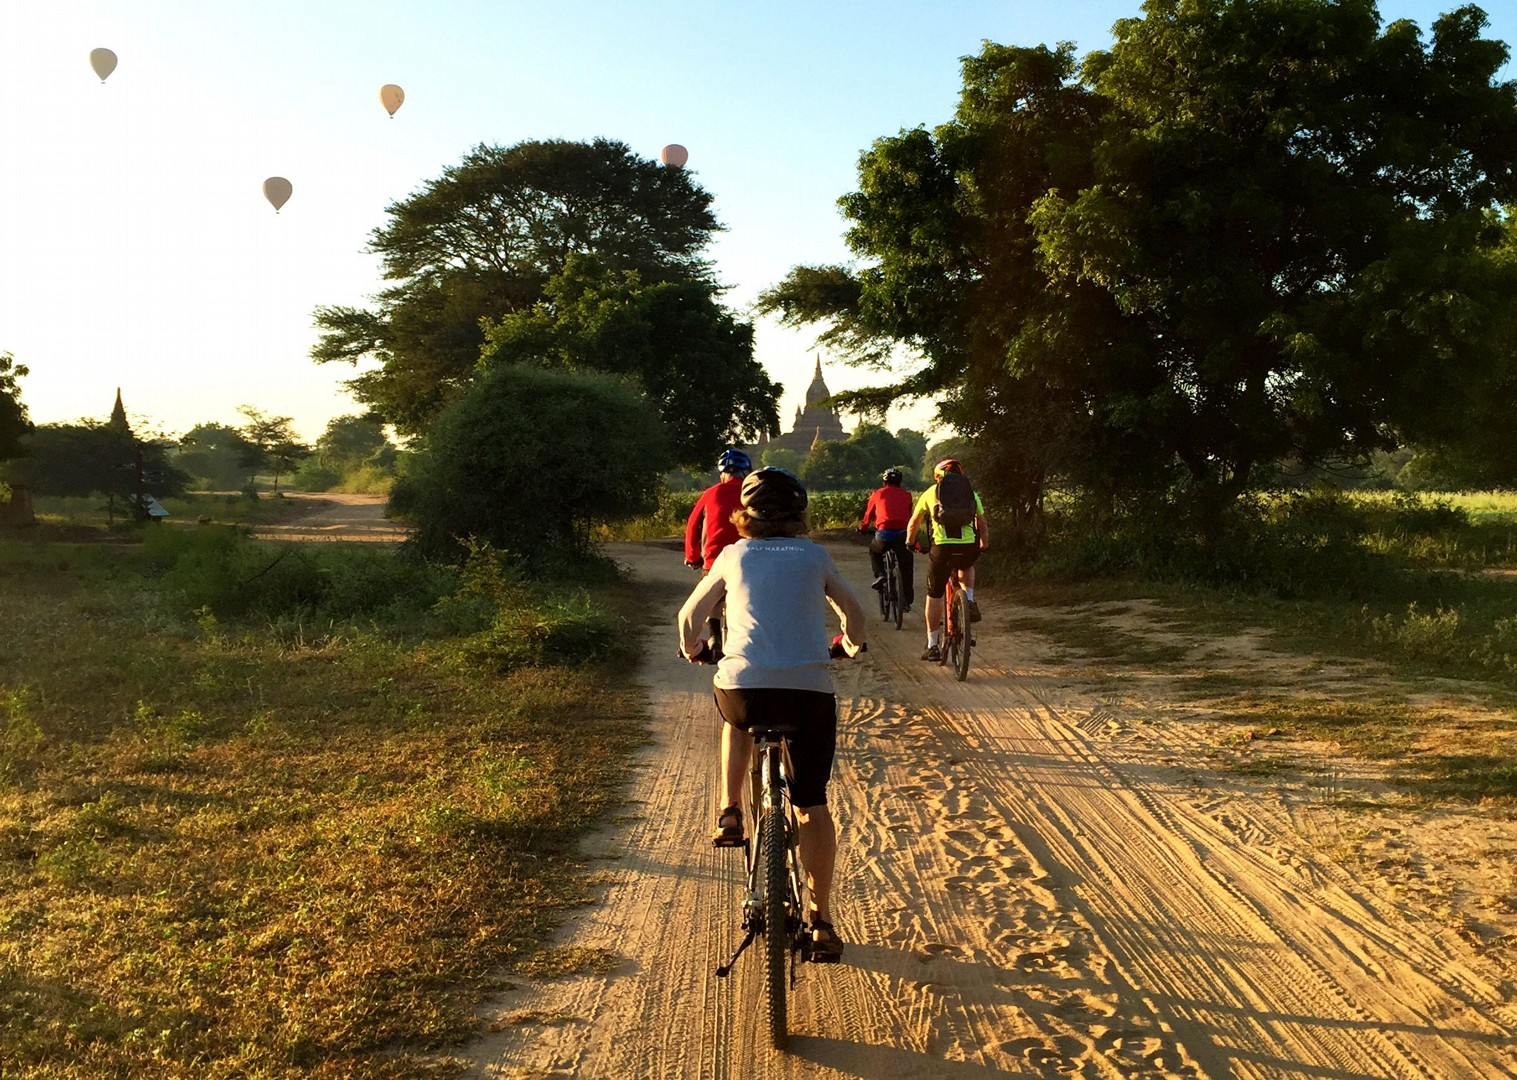 guided-group-cycling-adventure-burma.jpg - Myanmar (Burma) - Bagan and Beyond - Cycling Adventures